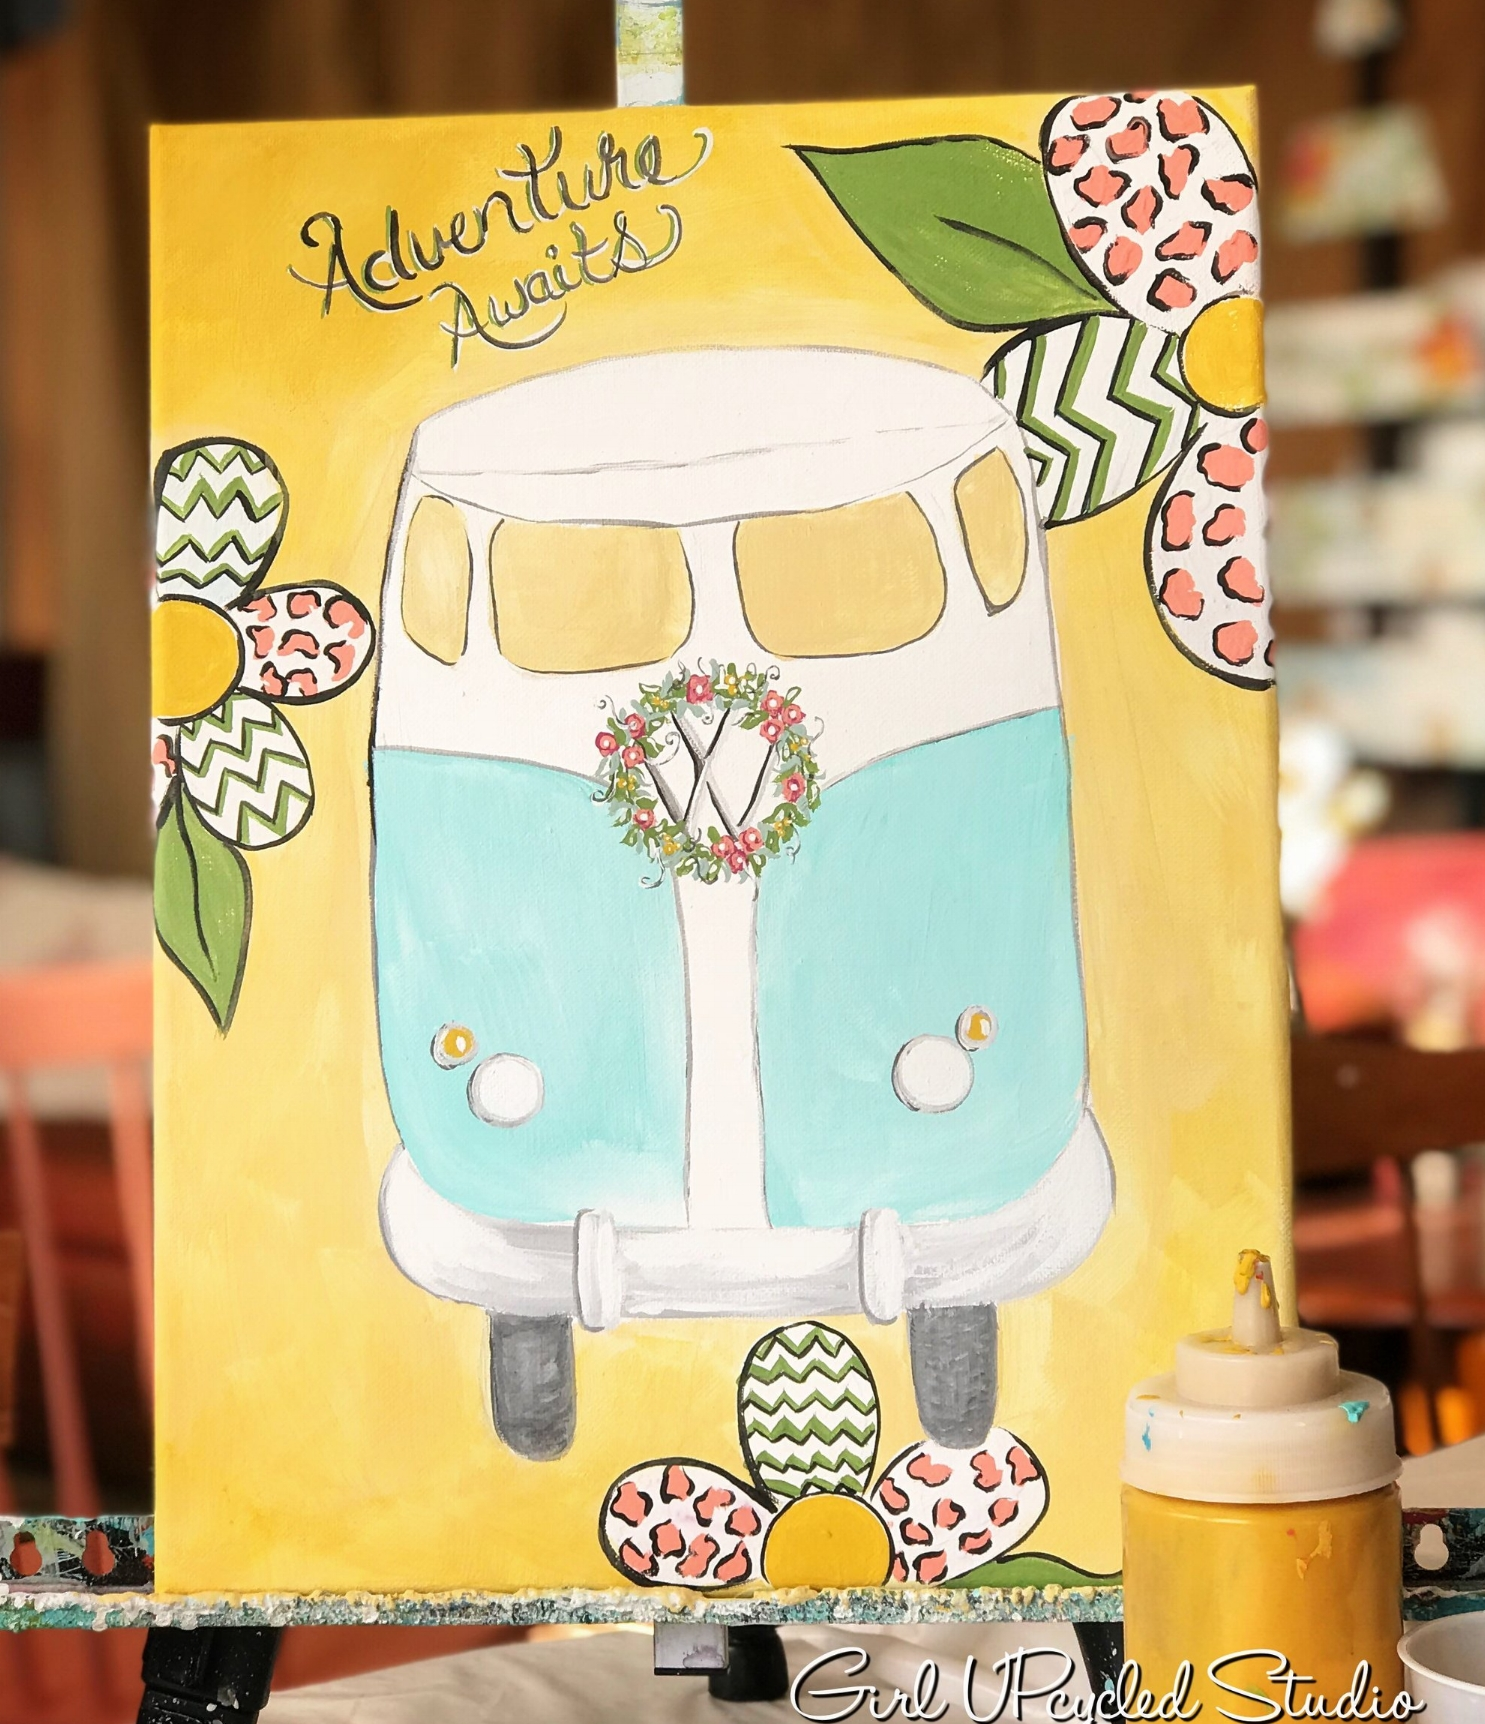 VW bus on canvas